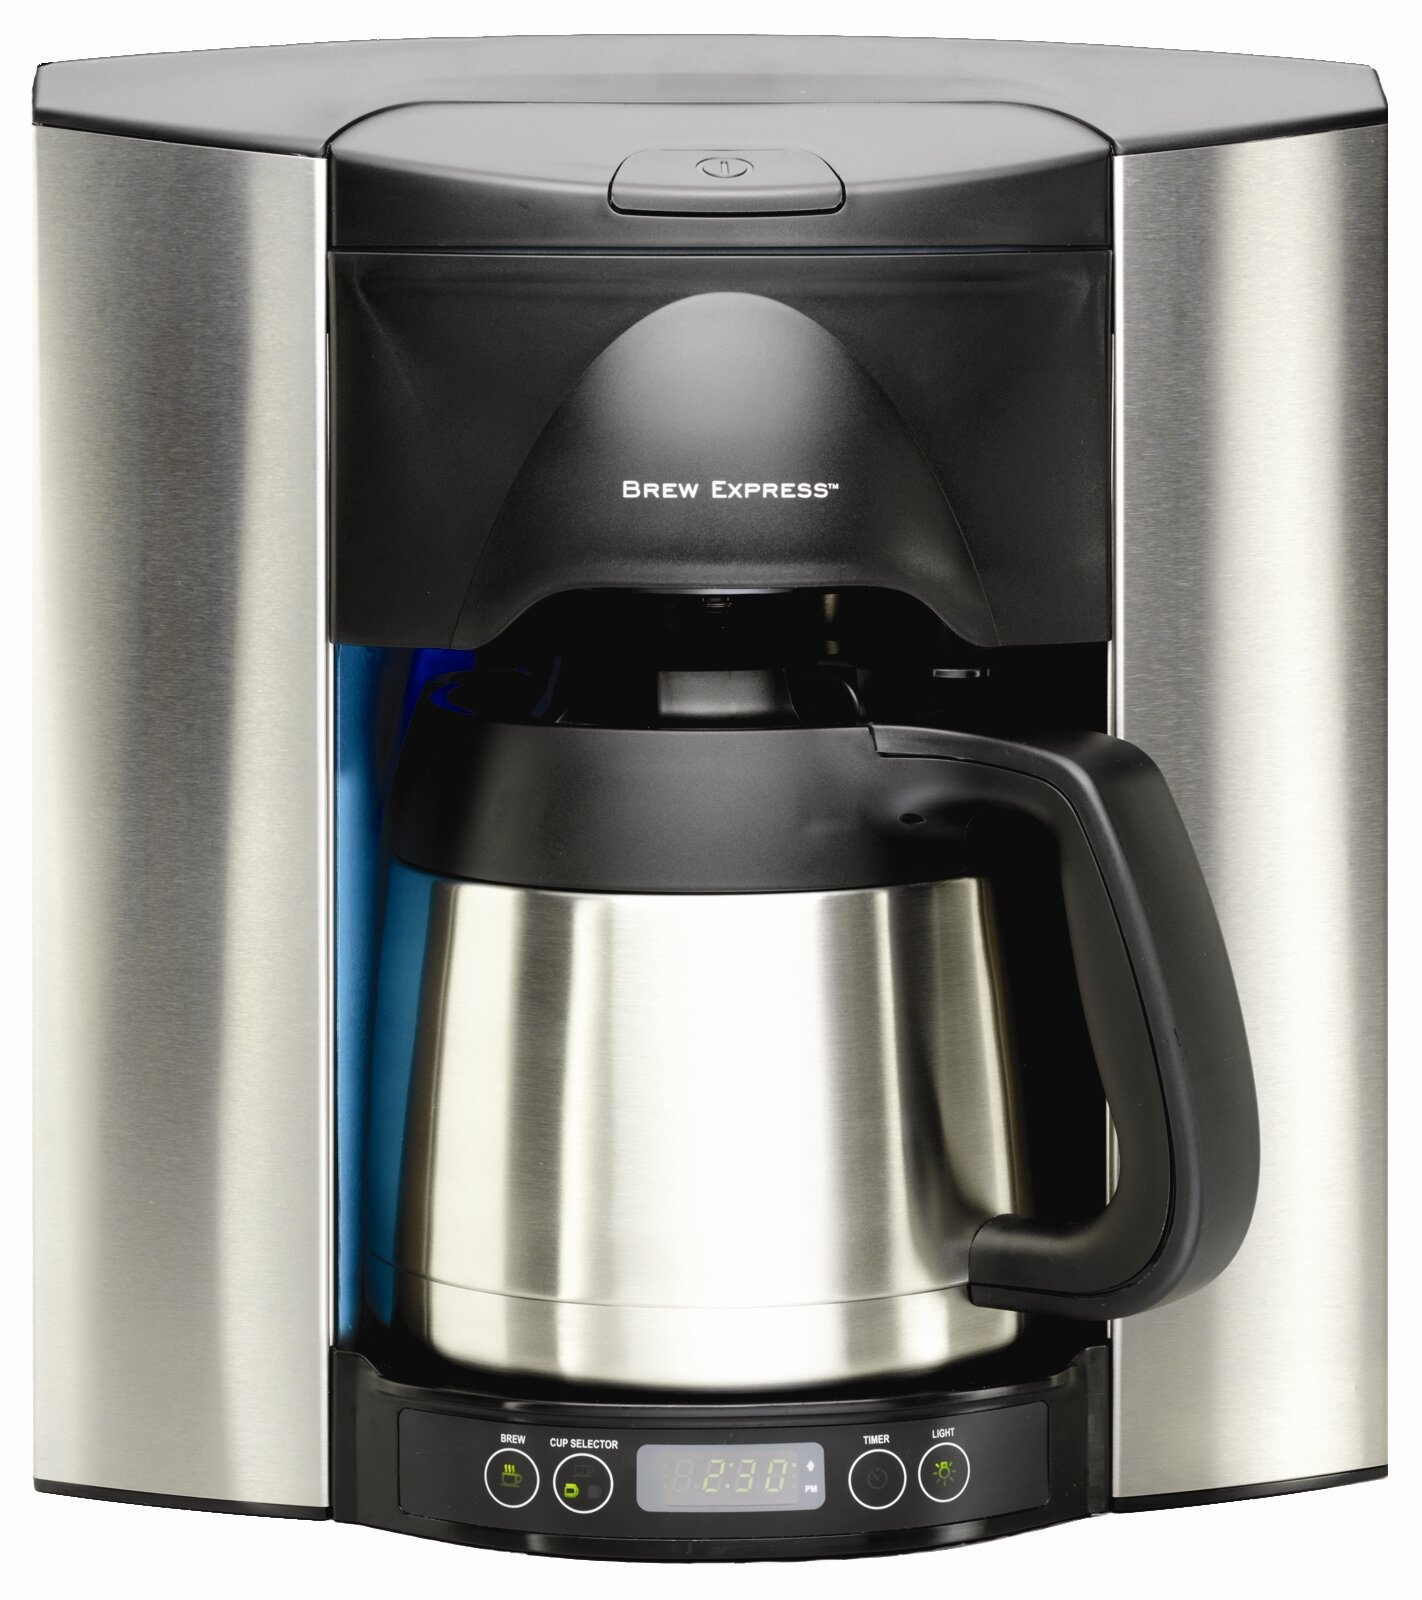 Brew Express 10 Cup Built In The Wall Self Filling Coffee And Hot Beverage System Stainless Steel Finish Reviews Wayfair